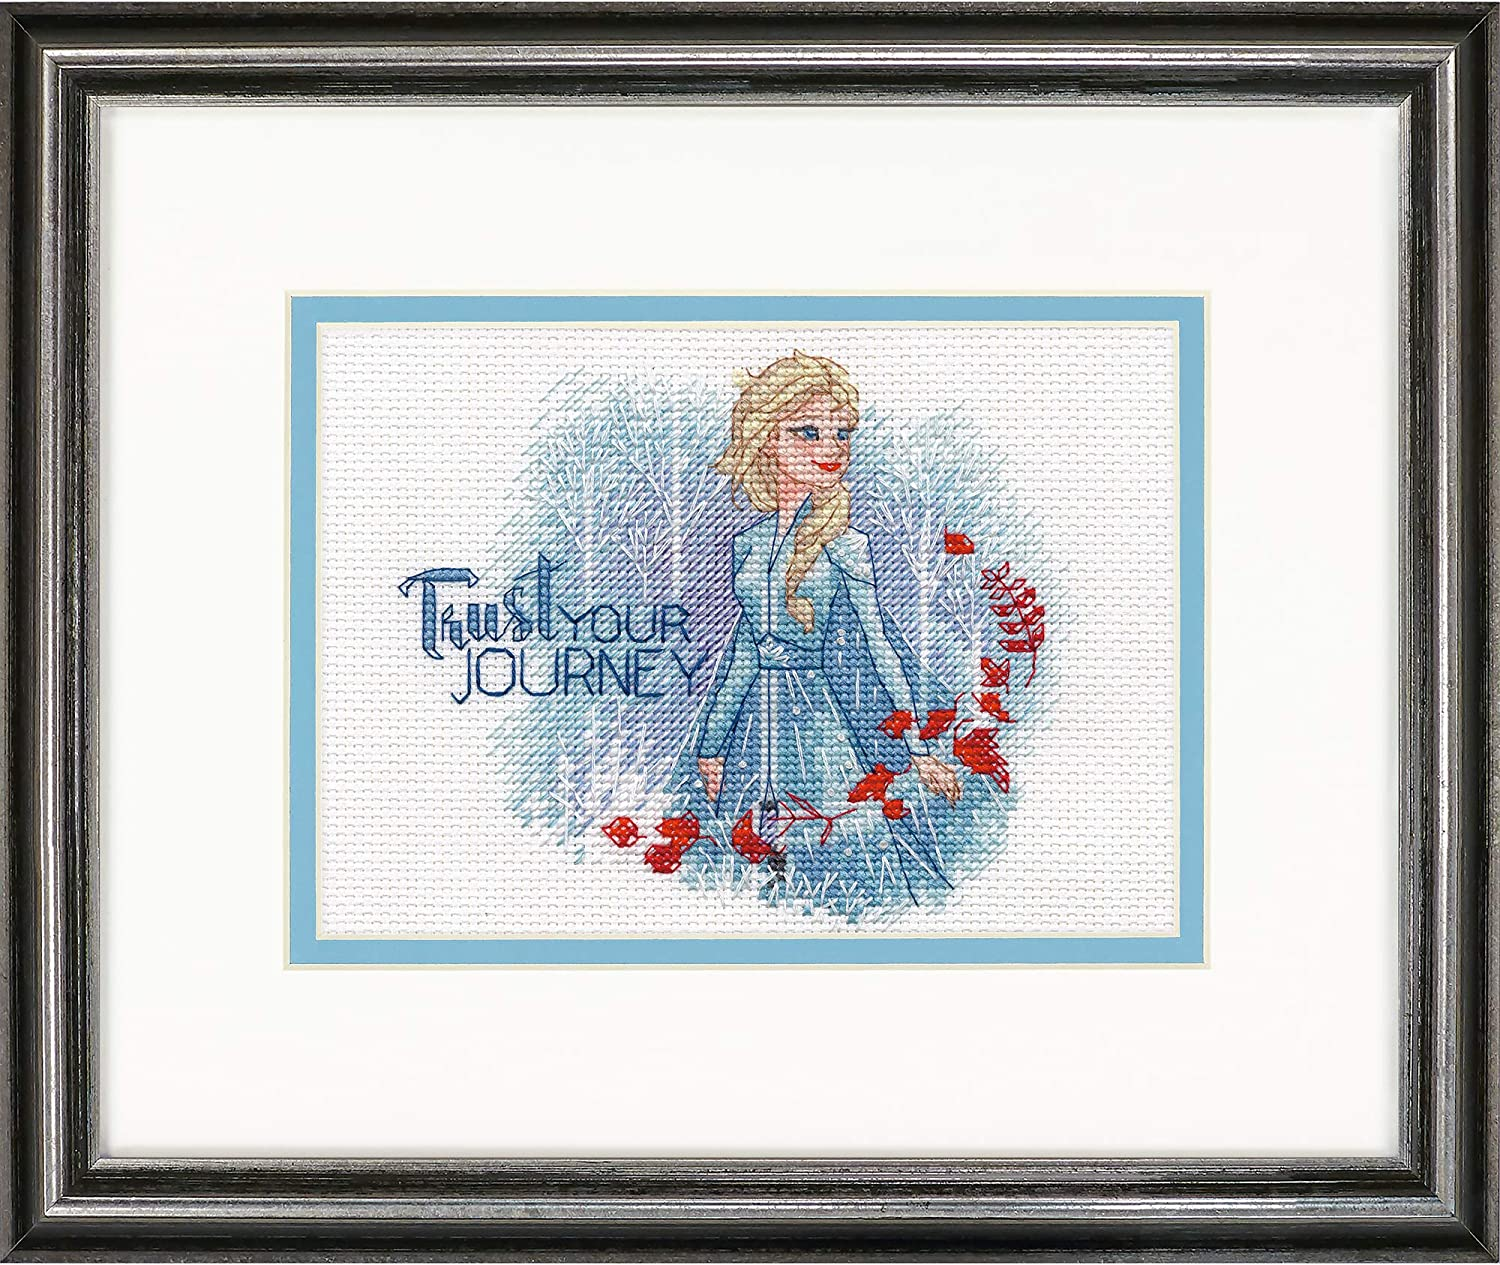 Dimensions 70-65198 Disneys Frozen II Trust Your Journey Counted Cross Stitch Kit 14 White Aida 7 x 5